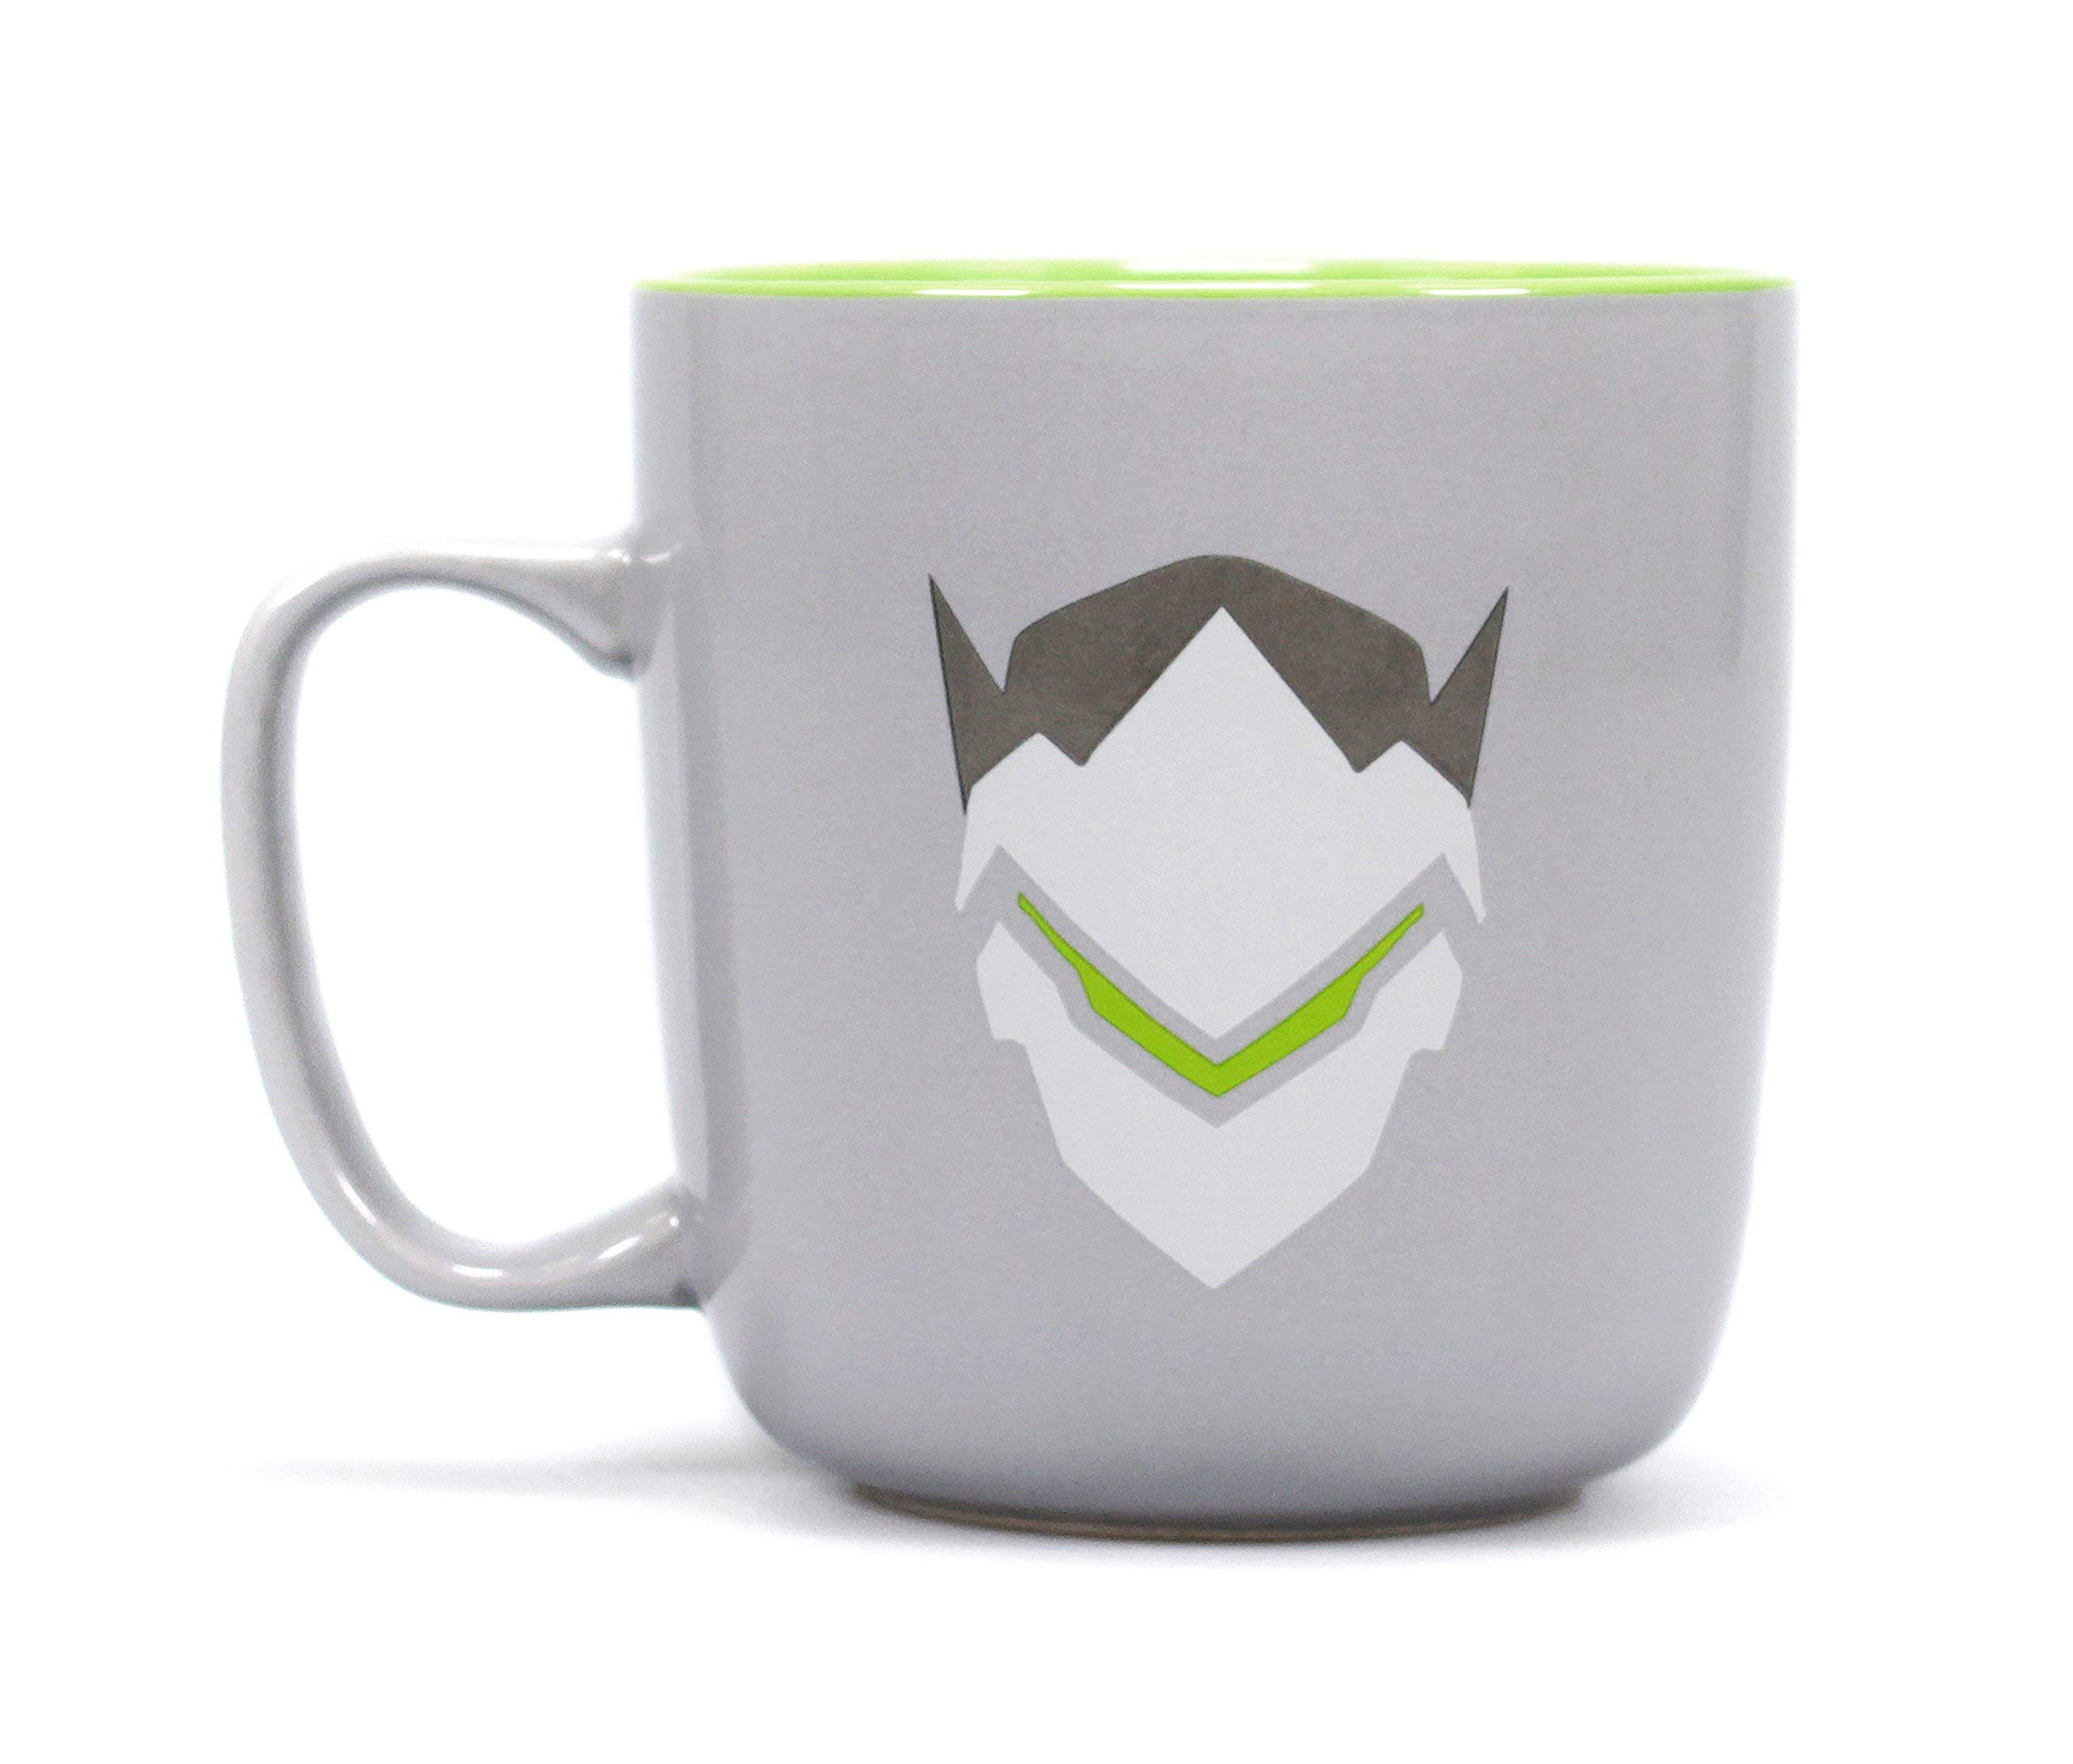 Half Moon Bay Overwatch Mug, Ceramic, Grey, 300 ml - 11,5 (w) x 9,5 (h) x 9 (d) cm